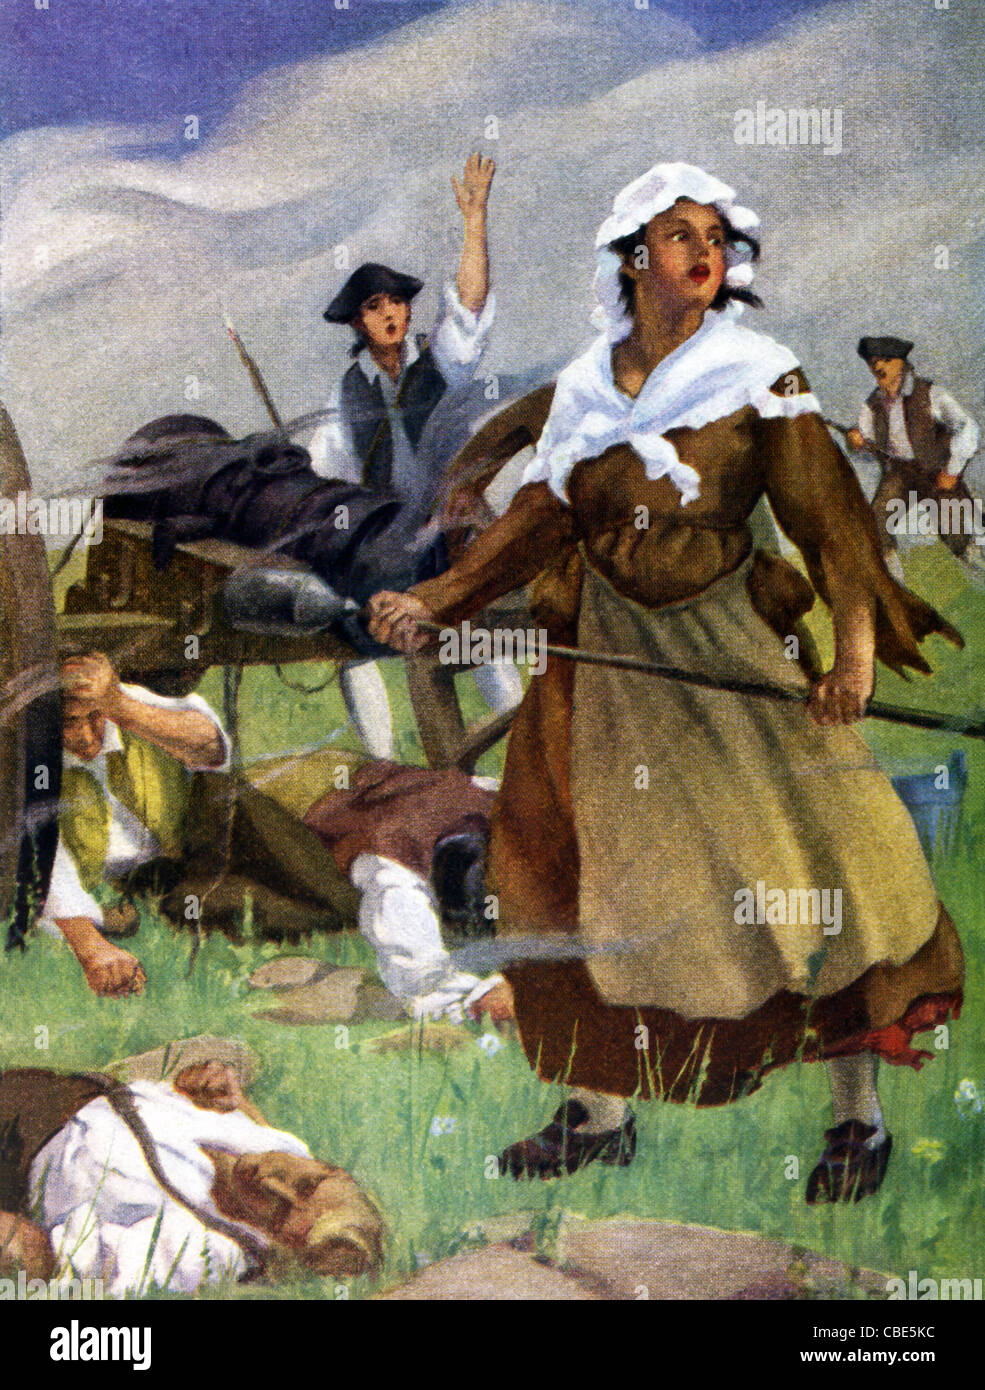 A woman nicknamed Molly Pitcher was said to have fought for the colonists during the American Revolution. - Stock Image